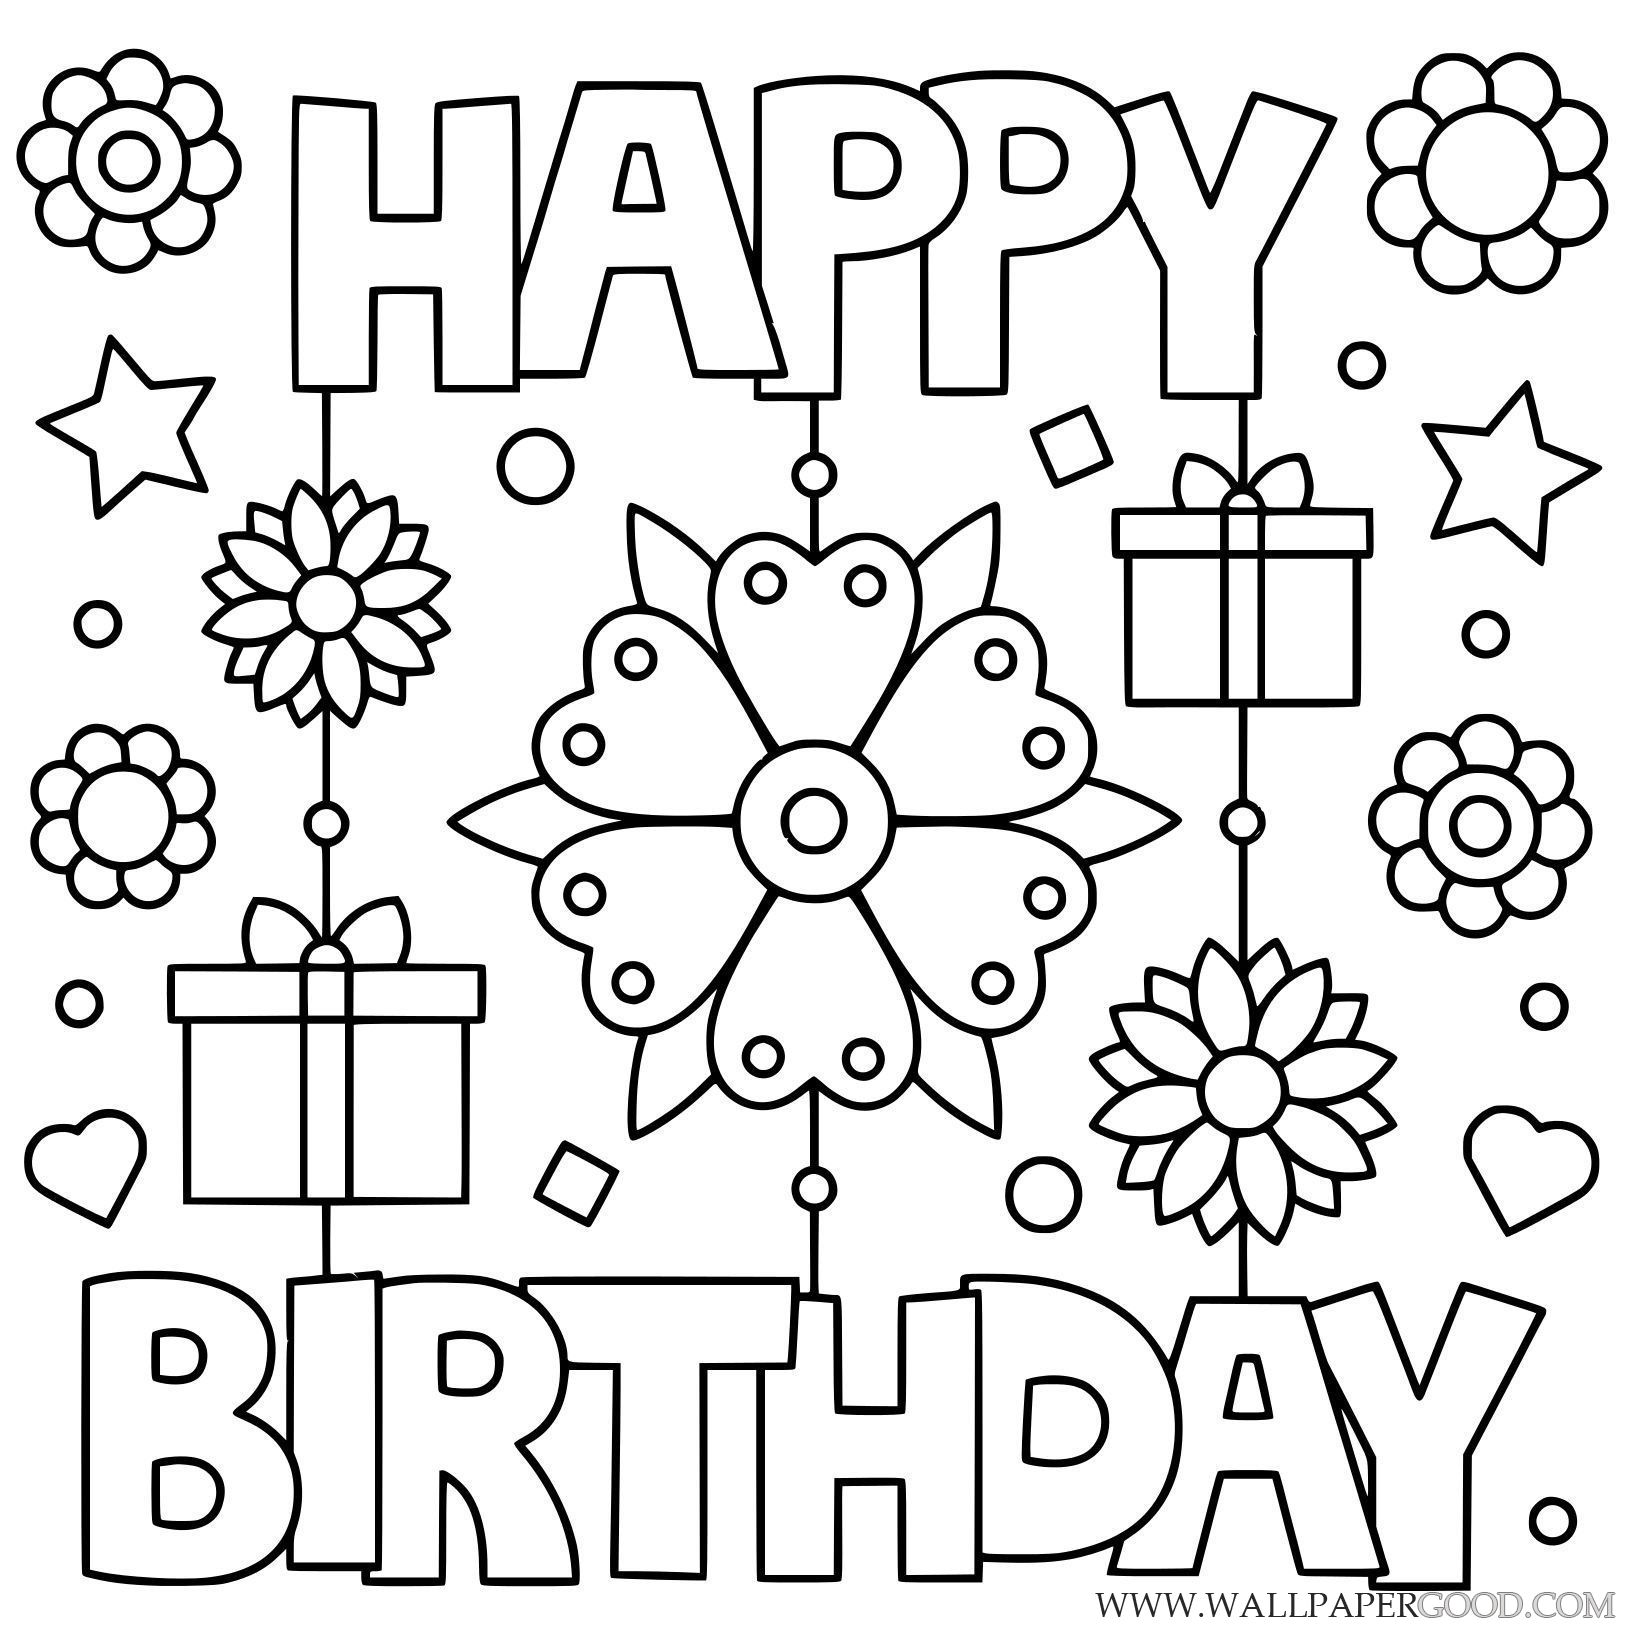 Happy Birthday Daddy Coloring Pages Free Printable